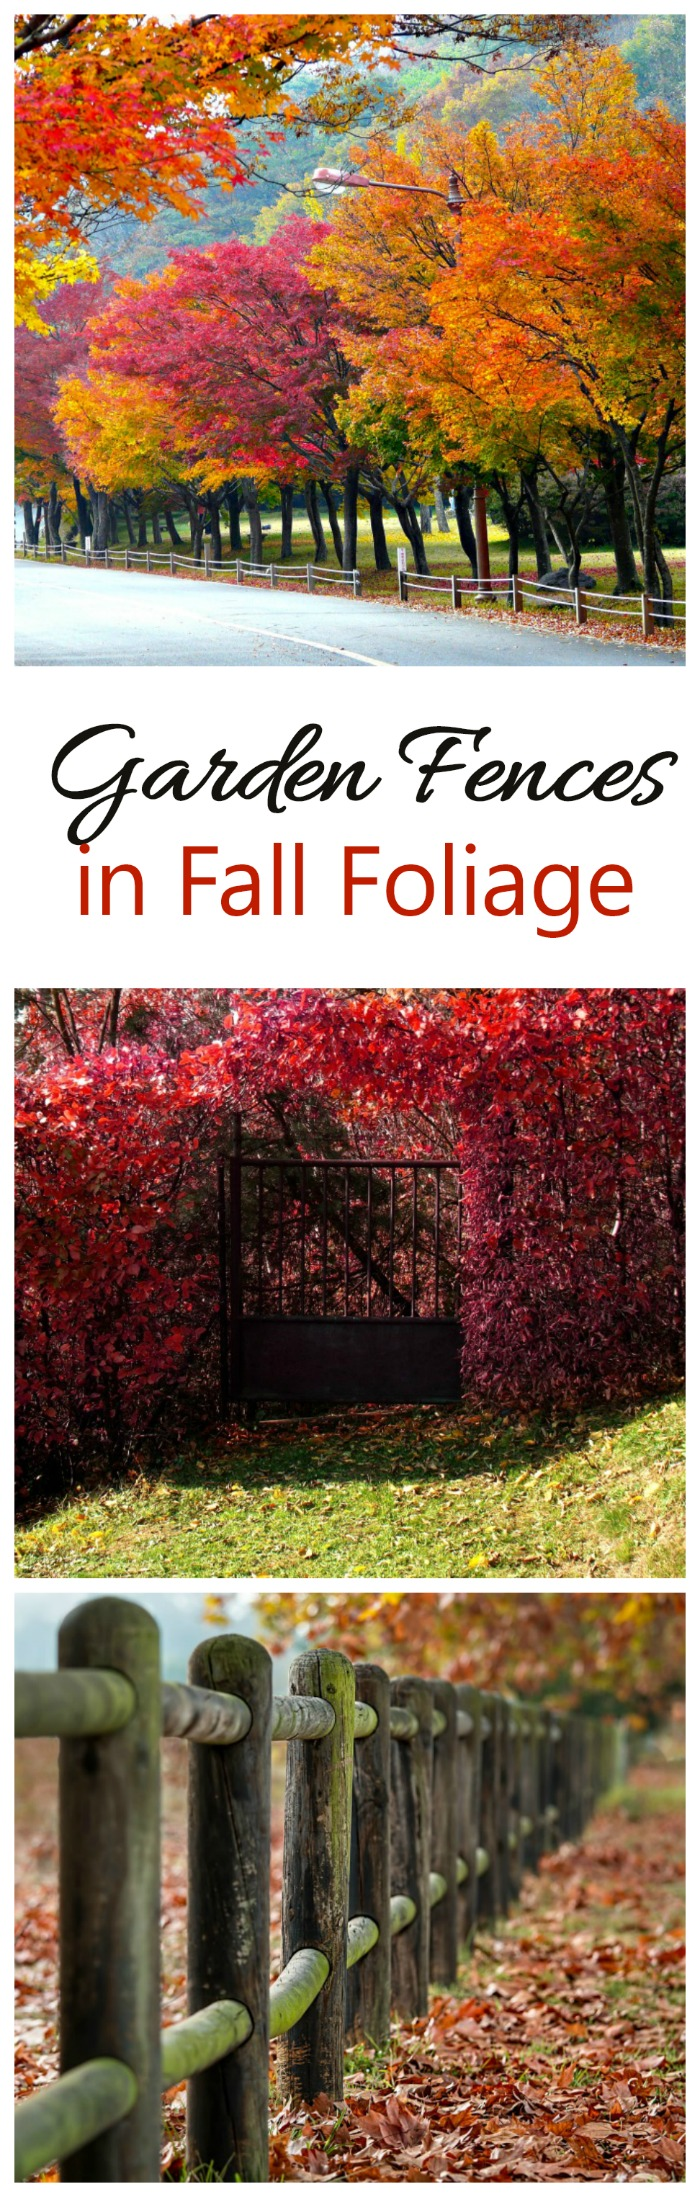 The colors of fall foliage add a backdrop to these garden fences and gates. Mother Nature at her best! #fallfoliage #gardenfences